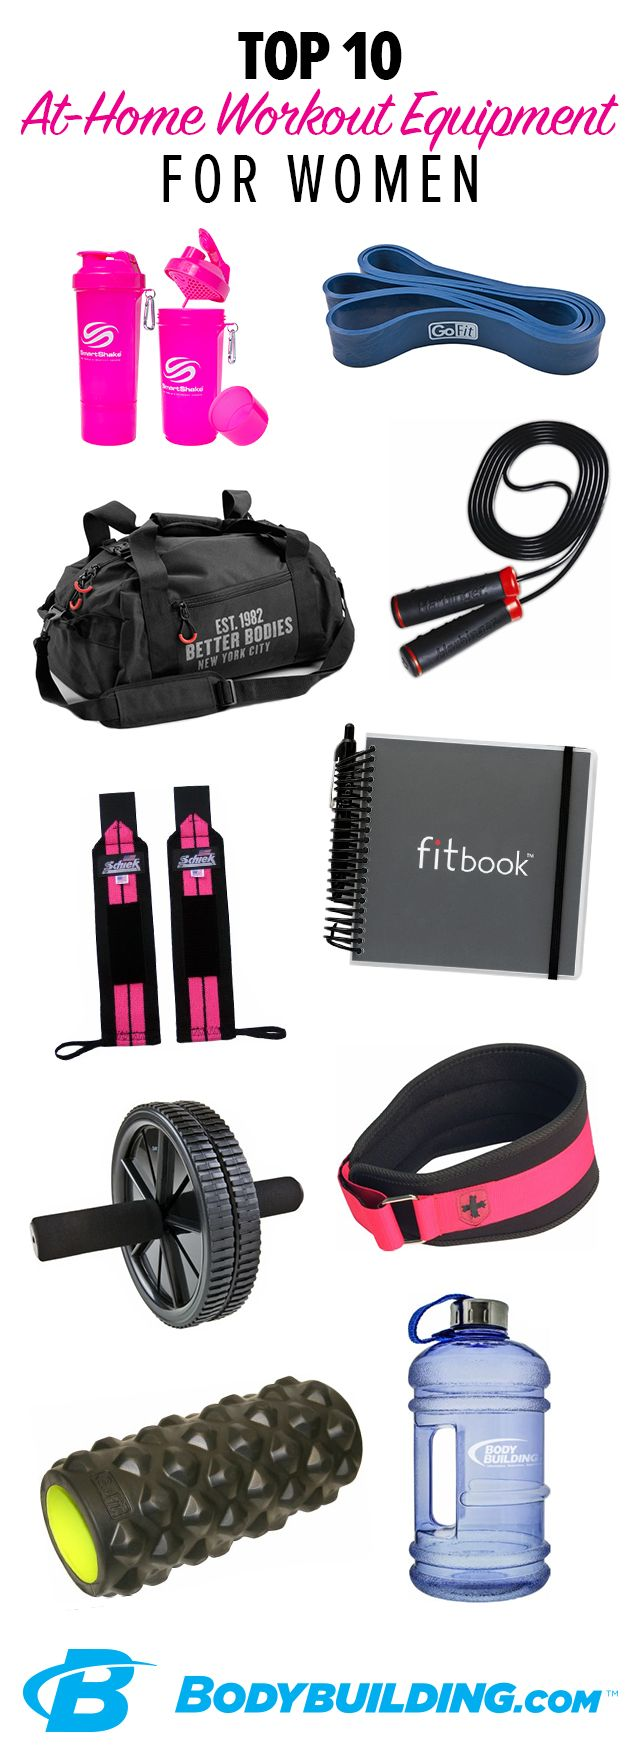 TOP 10 AT-HOME WORKOUT EQUIPMENT FOR WOMEN! Who says you need a gym to get a good workout? These favorite pieces of equipment will help you work in a workout anywhere. Get everything you need to break a sweat in your living room, hotel room, or wherever you get your training in.